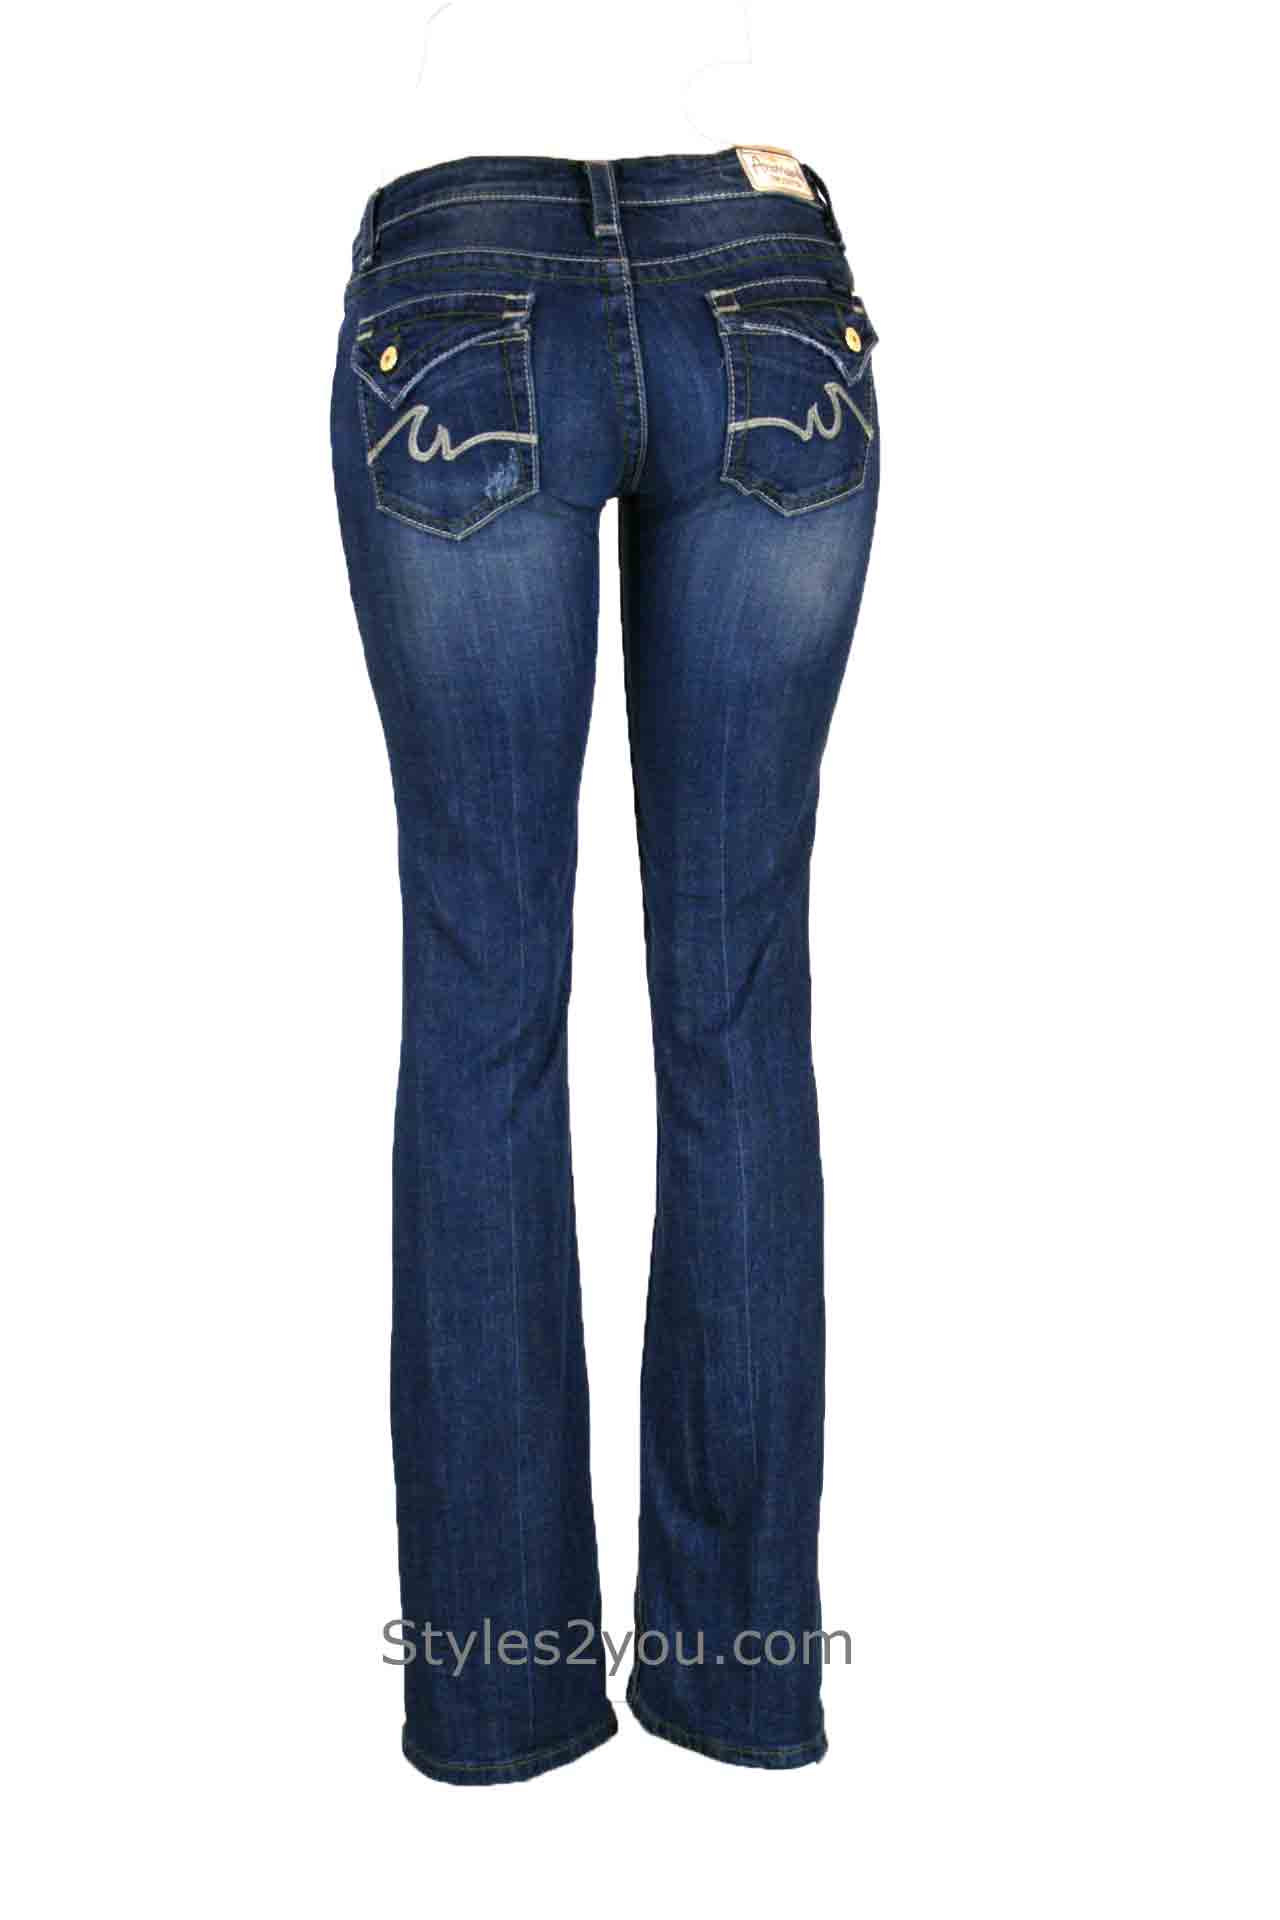 Joelle Boot Cut Aberfalt Urban Distressed Denim Jeans Anoname ...